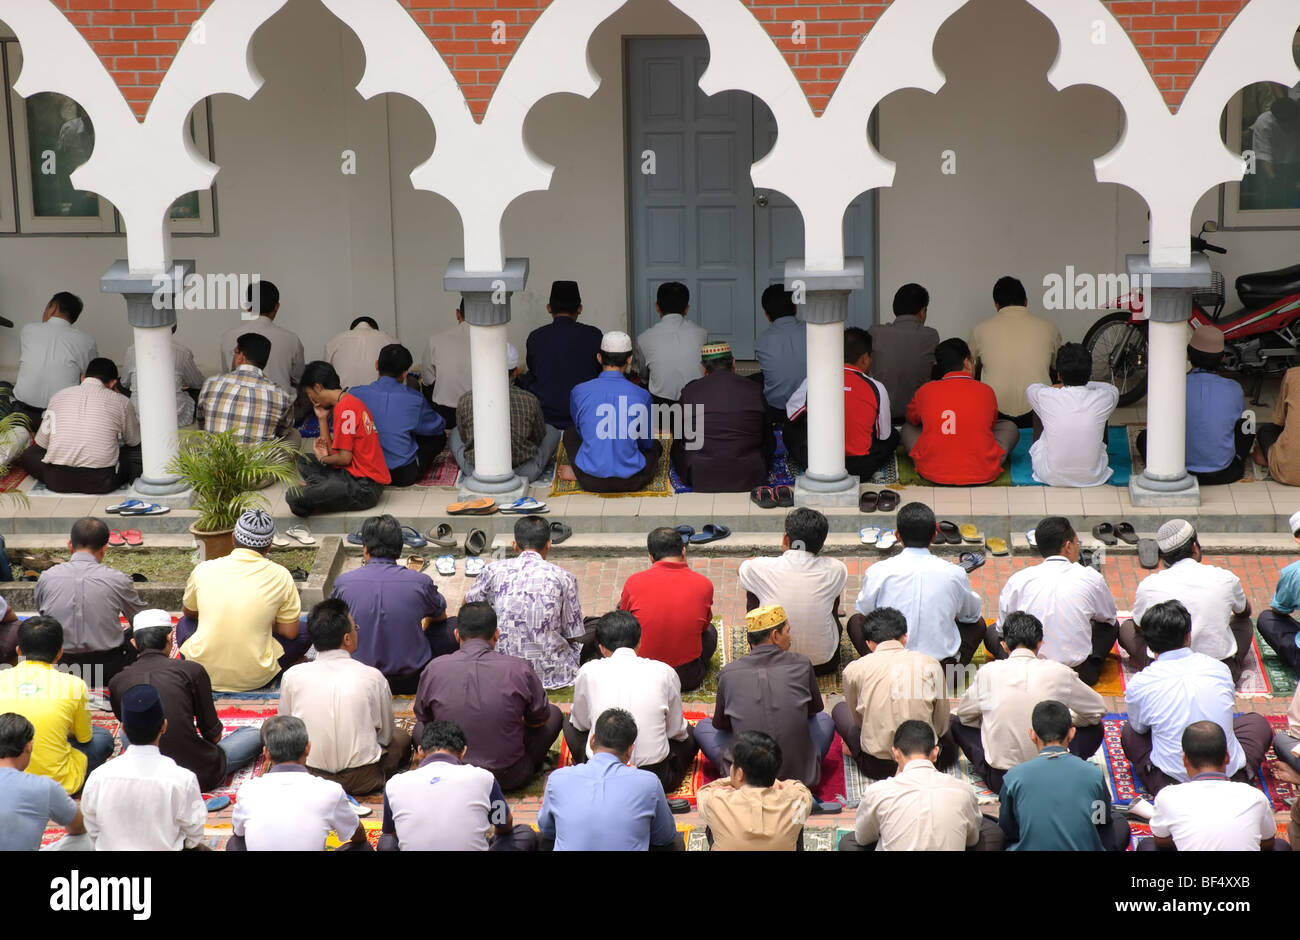 Large group of male islamic worshipers at Friday prayers in a mosque - Stock Image